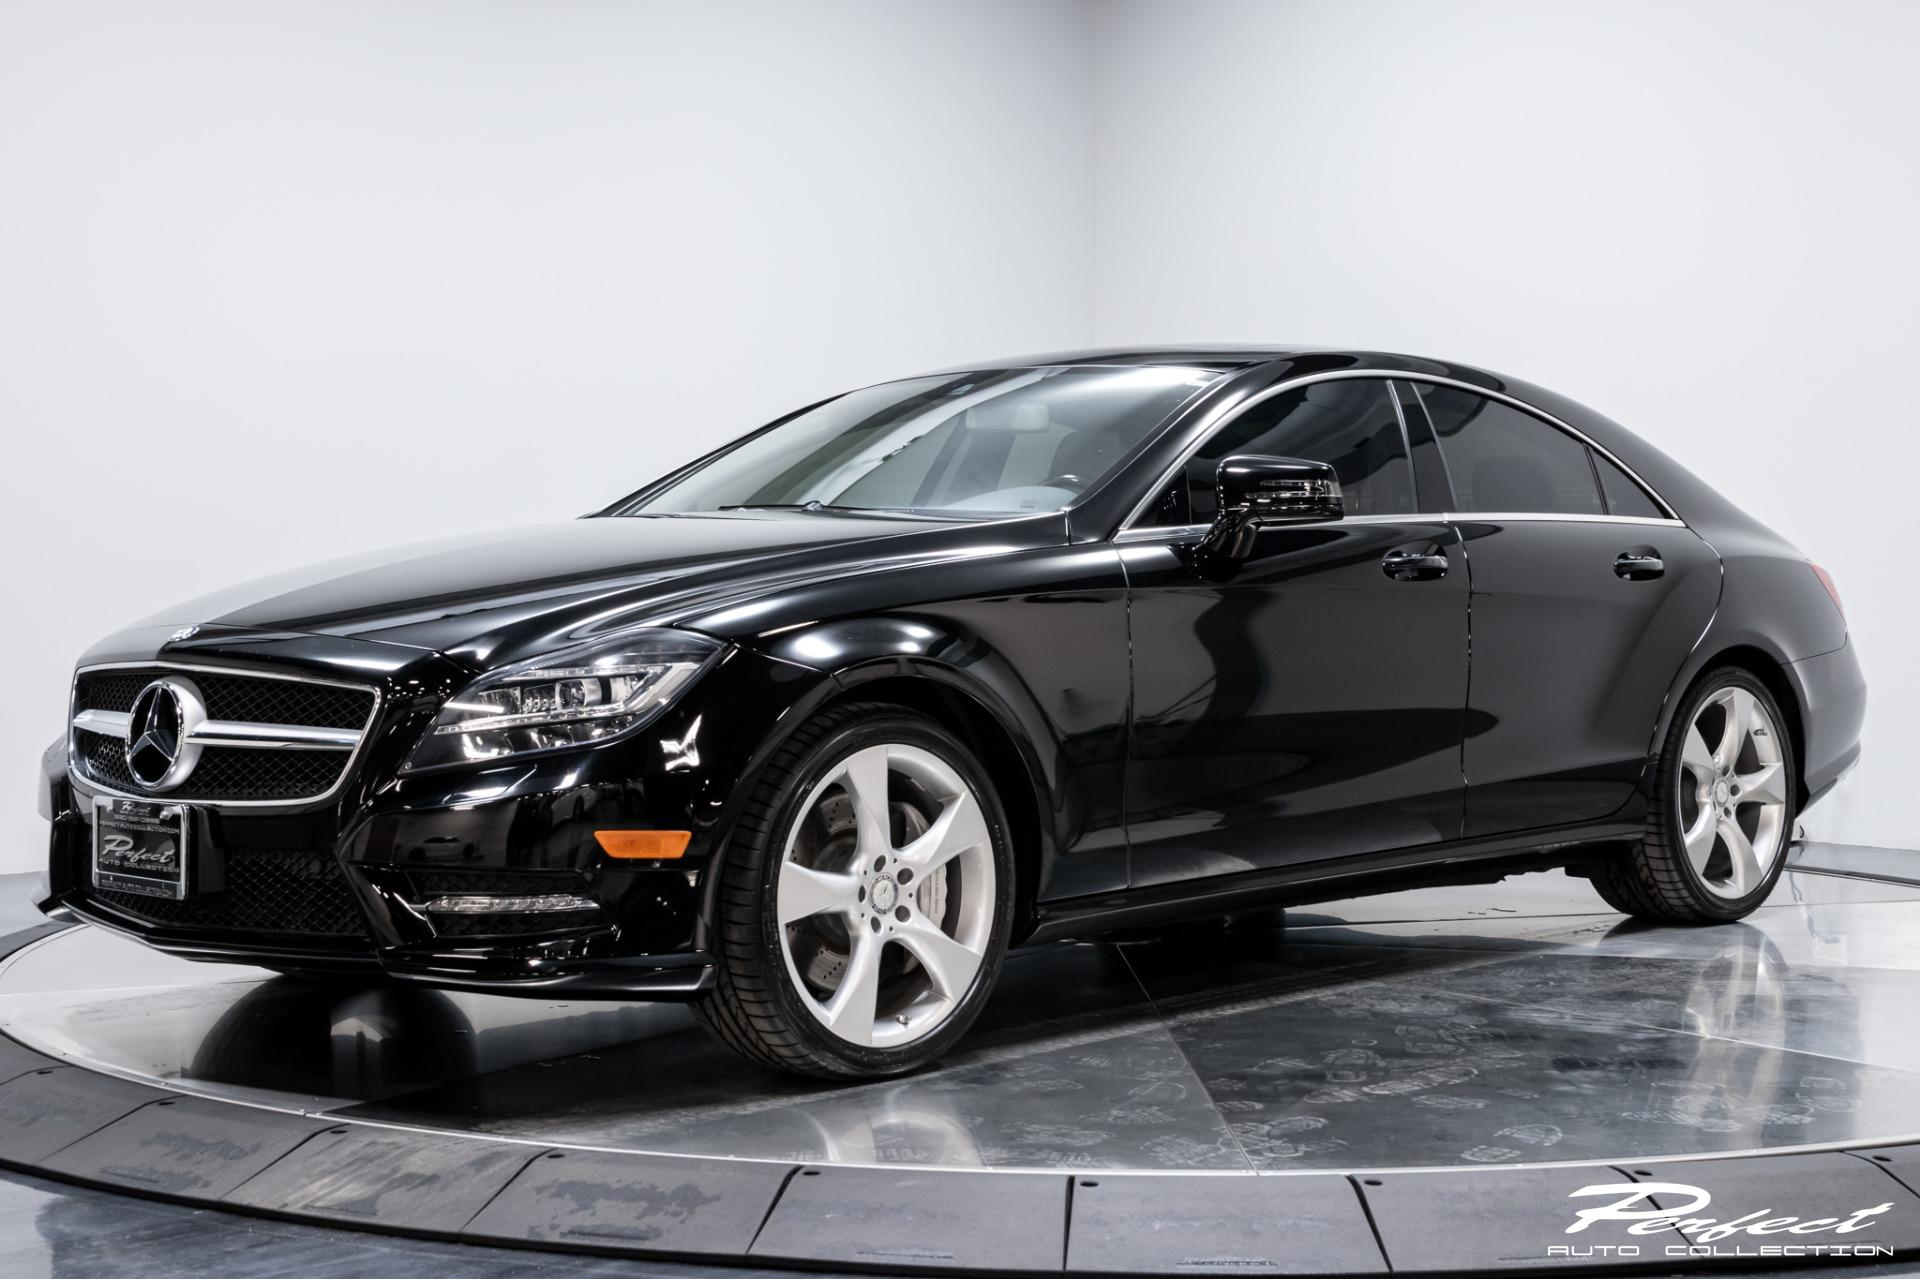 Used 2014 Mercedes-Benz CLS CLS 550 4MATIC for sale $27,993 at Perfect Auto Collection in Akron OH 44310 1